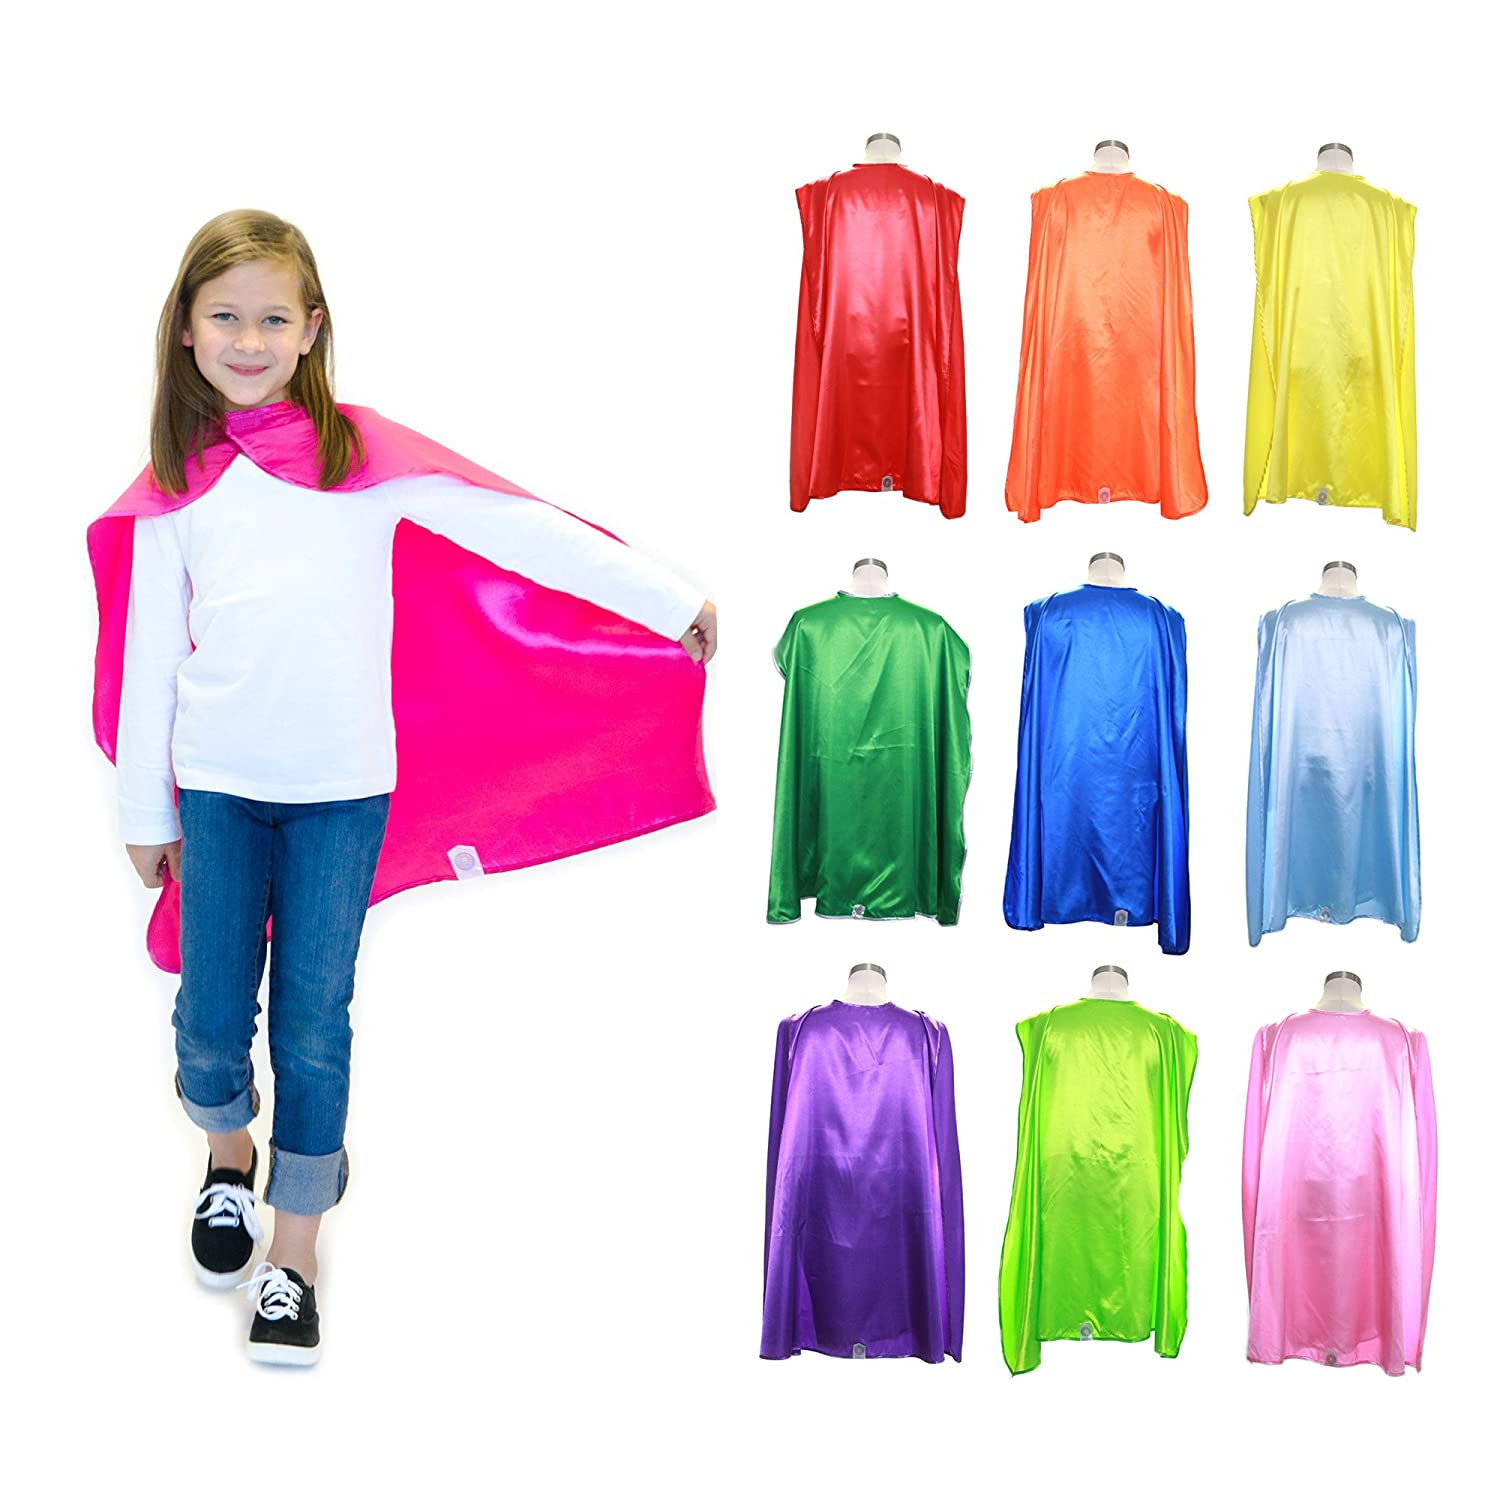 Set of 10 Polyester Satin Capes Bulk Super Hero Cape Kids 120701-PP-10 Everfan Youth Superhero Cape Party Pack